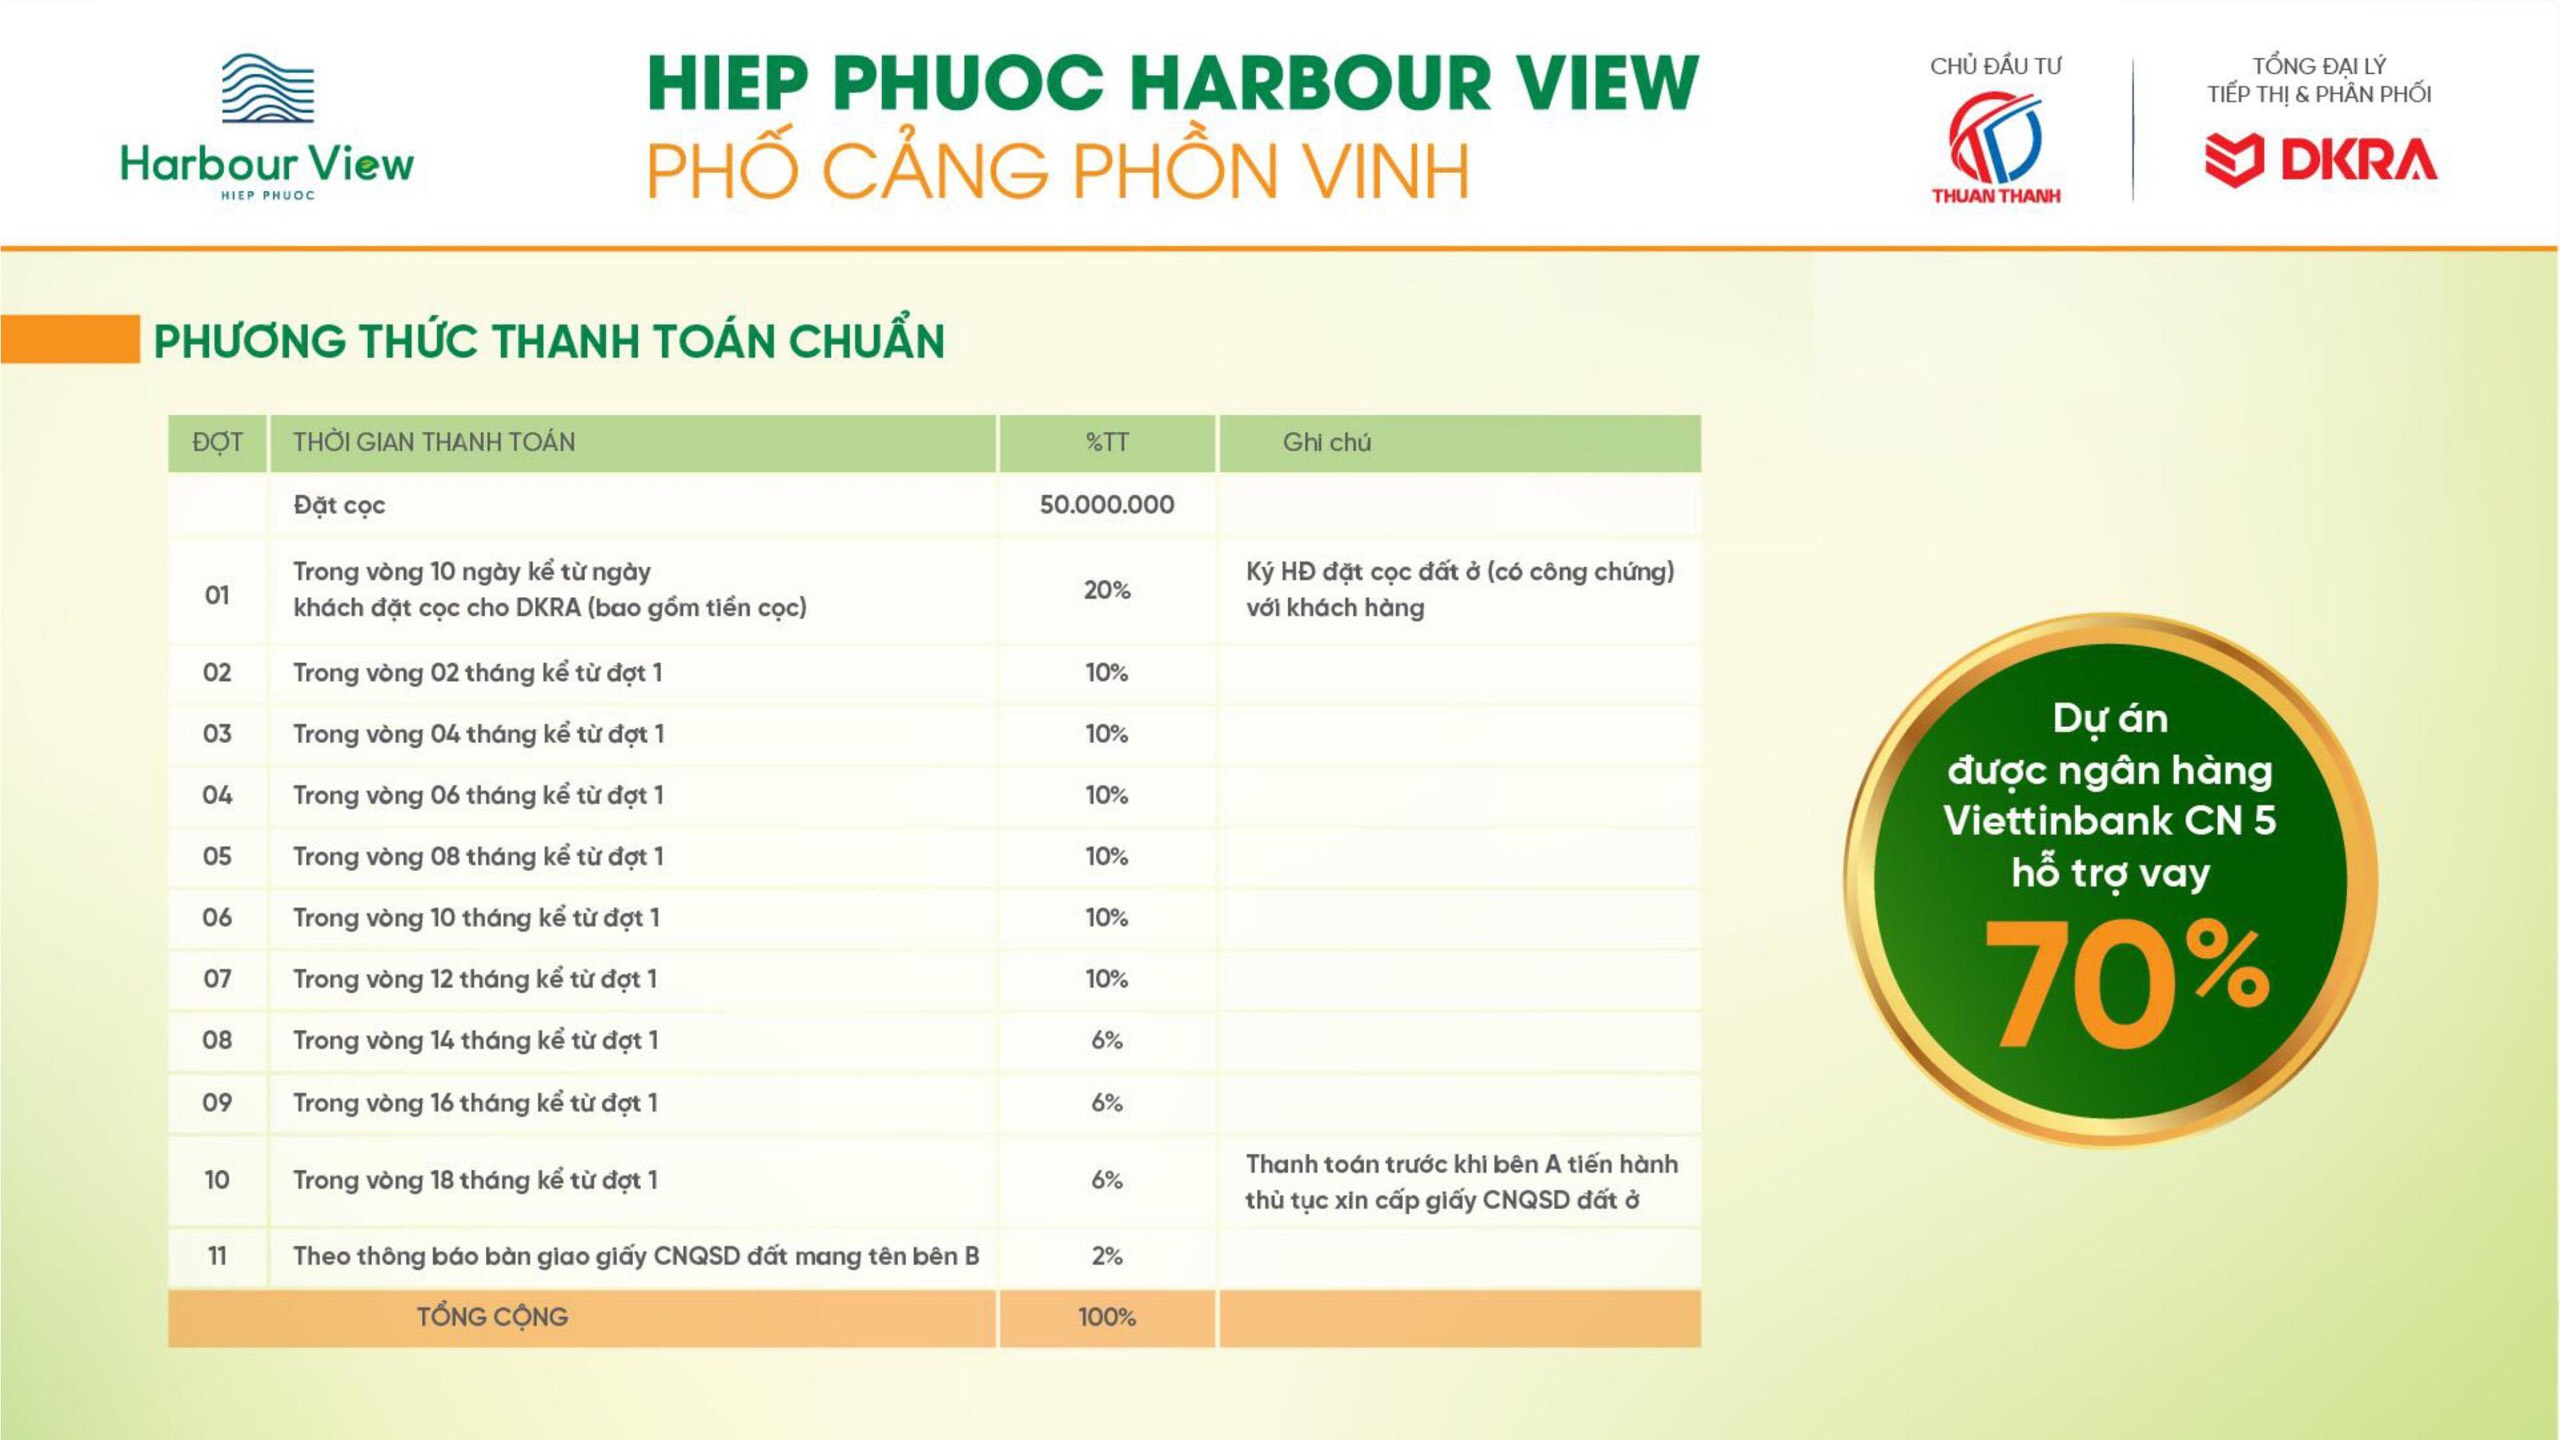 chinh sach thanh toan hiep phuoc harbour view thang 32021, Hiep Phuoc Harbour View; Hiệp Phước Harbour View; Harbour View Hiep Phuoc ; Harbour View Hiệp Phước,Harbour View Hai Thành, Dat nen Harbour View, đất nền hiệp phước harbour view, dat nen harbour view hiep phuoc, du an hiep phuoc harbour view hai thanh, dự án hiệp phước harbour view, du an harbour view, harbour view hiep phuoc, harbour view hai thành